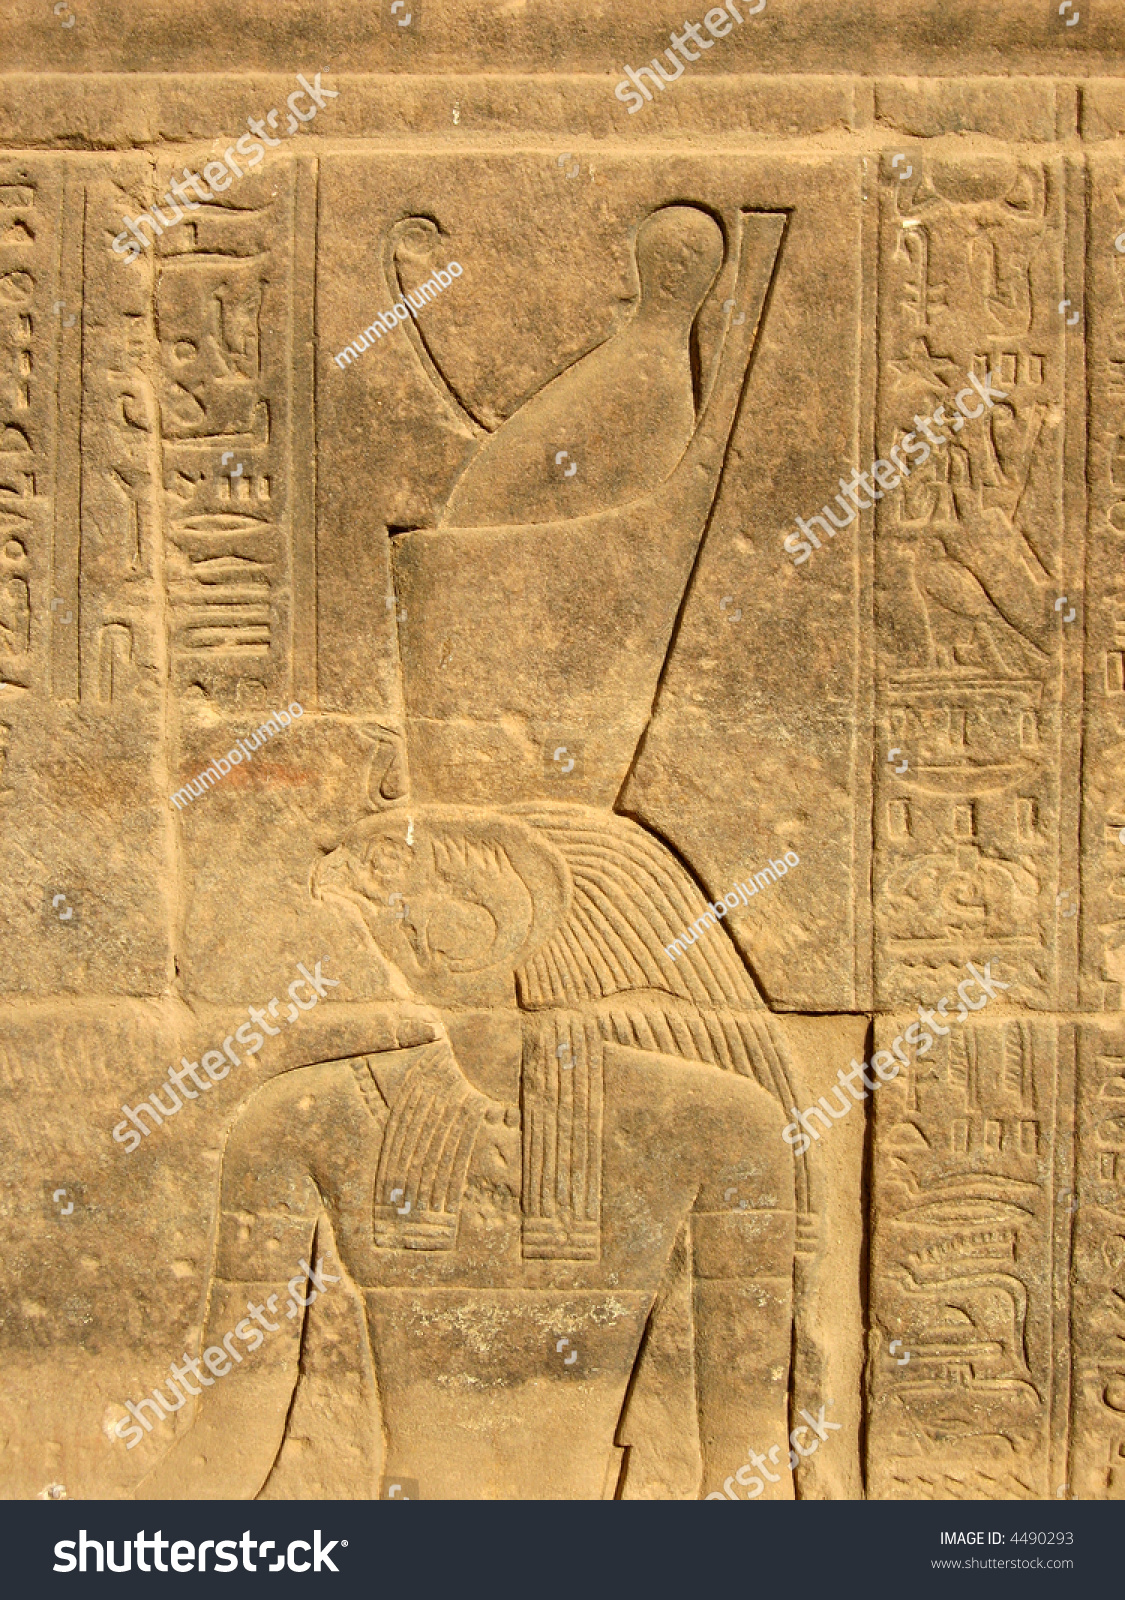 Ancient egyptian hieroglyphics carved into stone stock